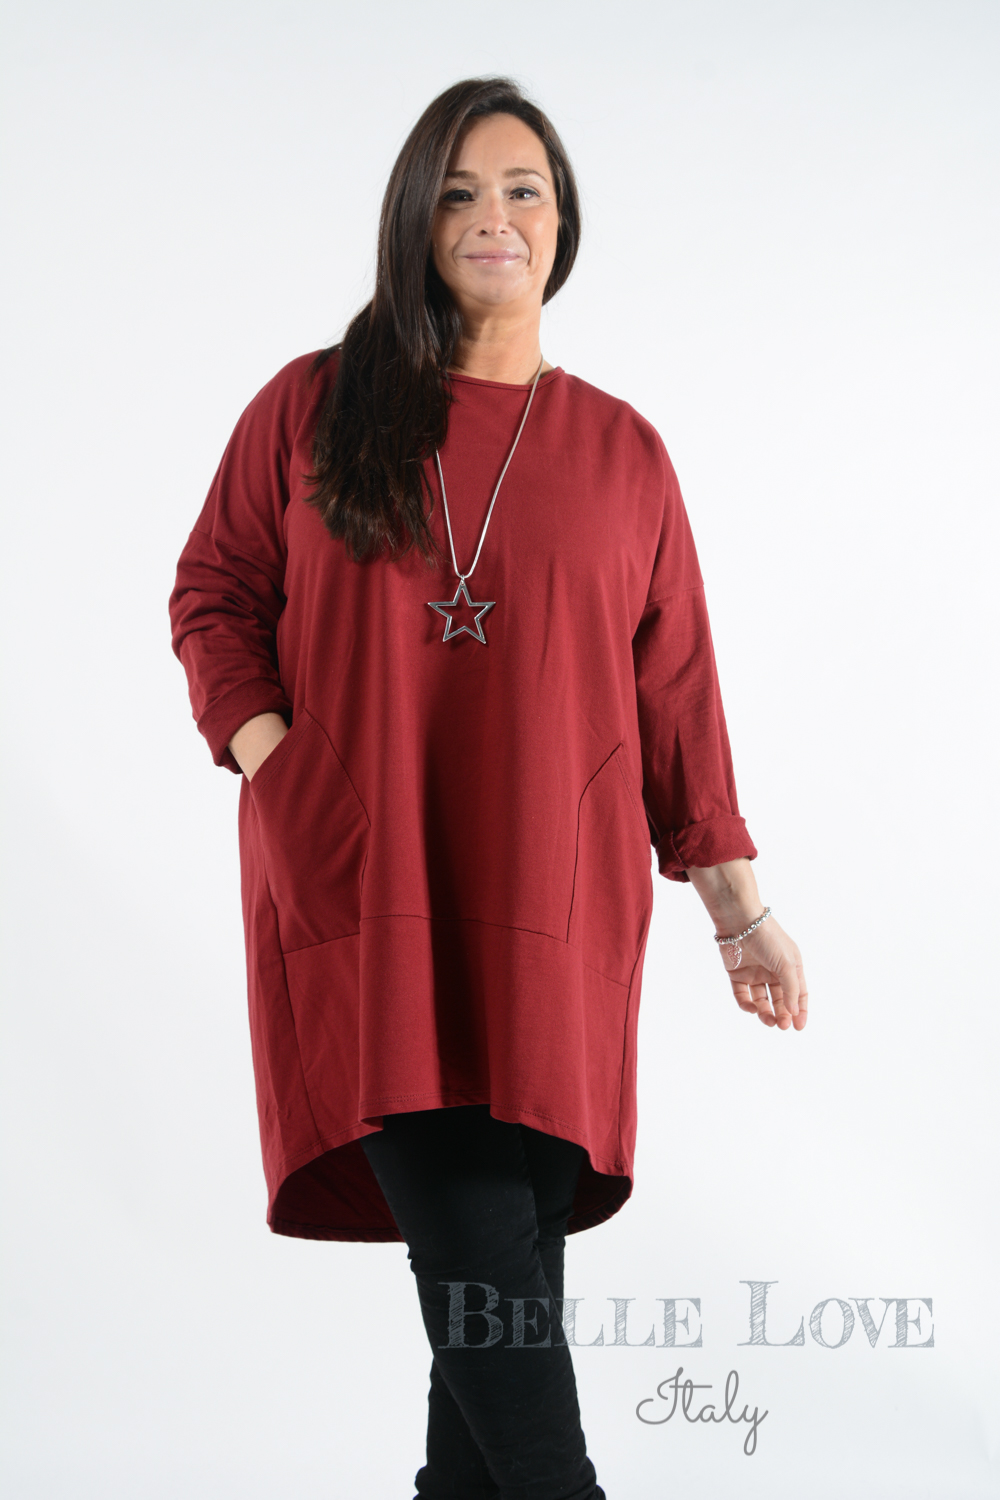 Belle Love Italy Evelyn Tunic